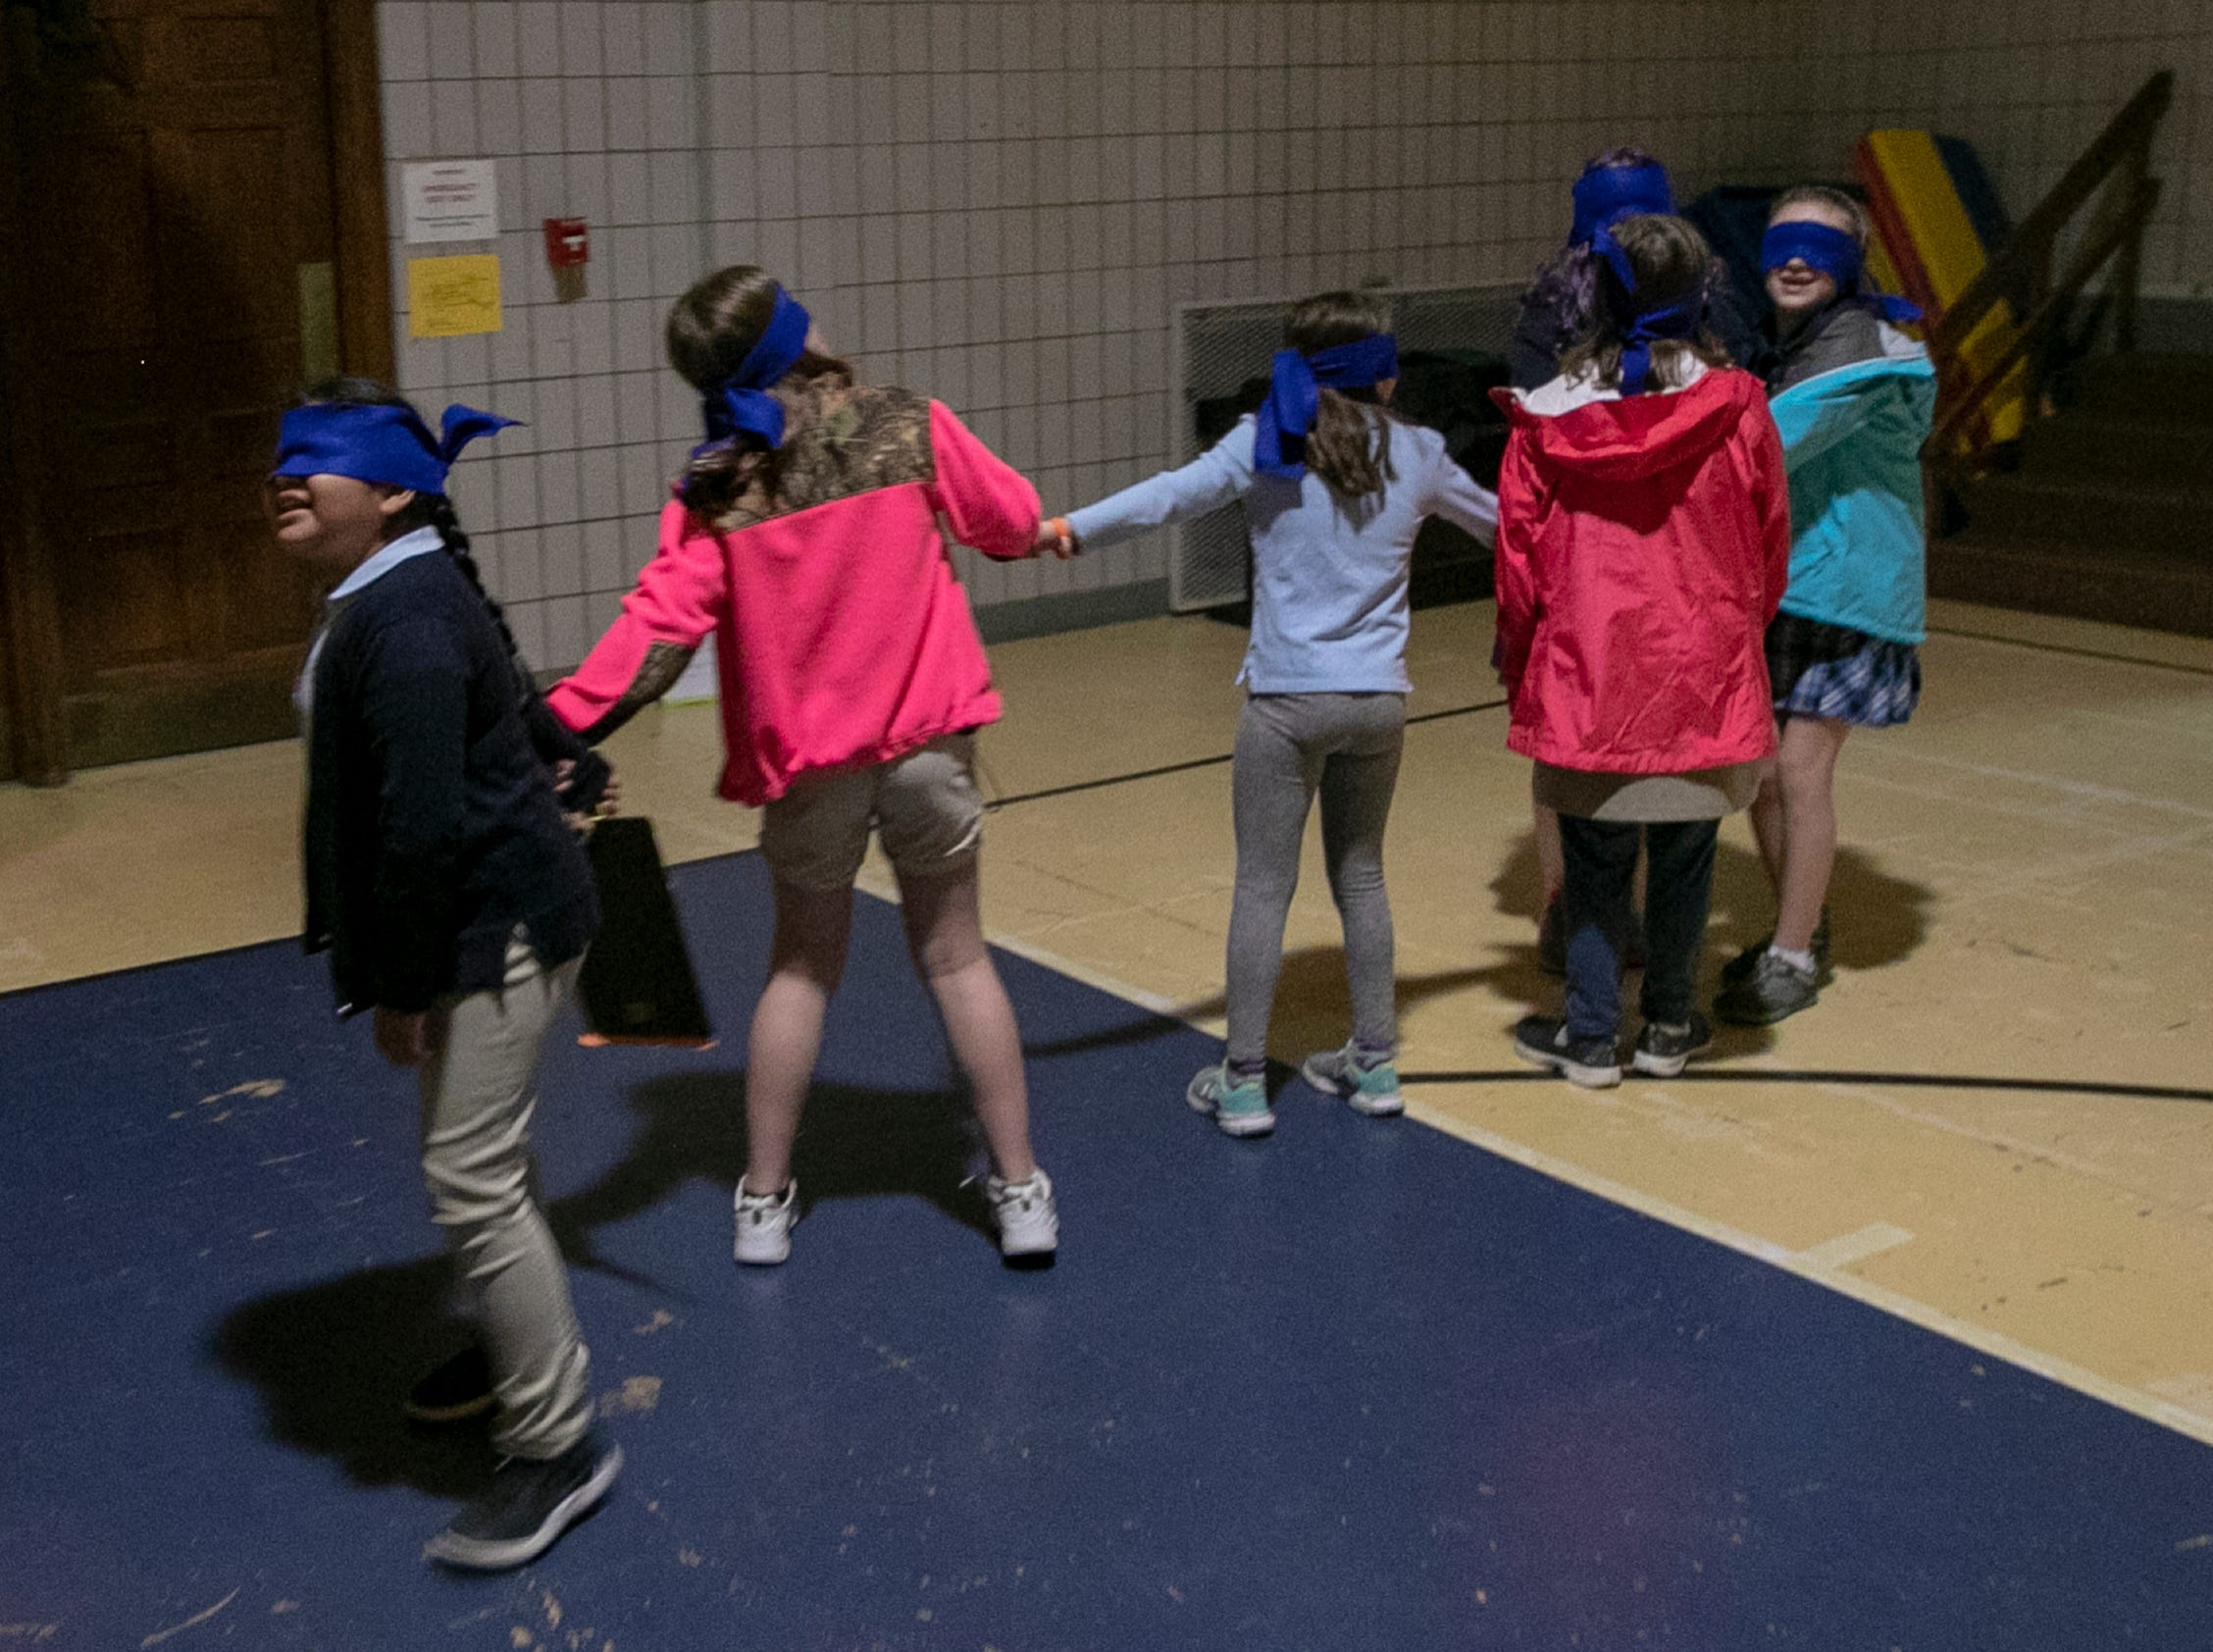 Blindfolded students call out for 'family' members during a workshop for fourth graders at International School of Indiana, Indianapolis, Thursday, May 1, 2019. The students had divided into families, separated in a darkened room with the sounds of a forest fire playing, and asked to find their simulated families again.